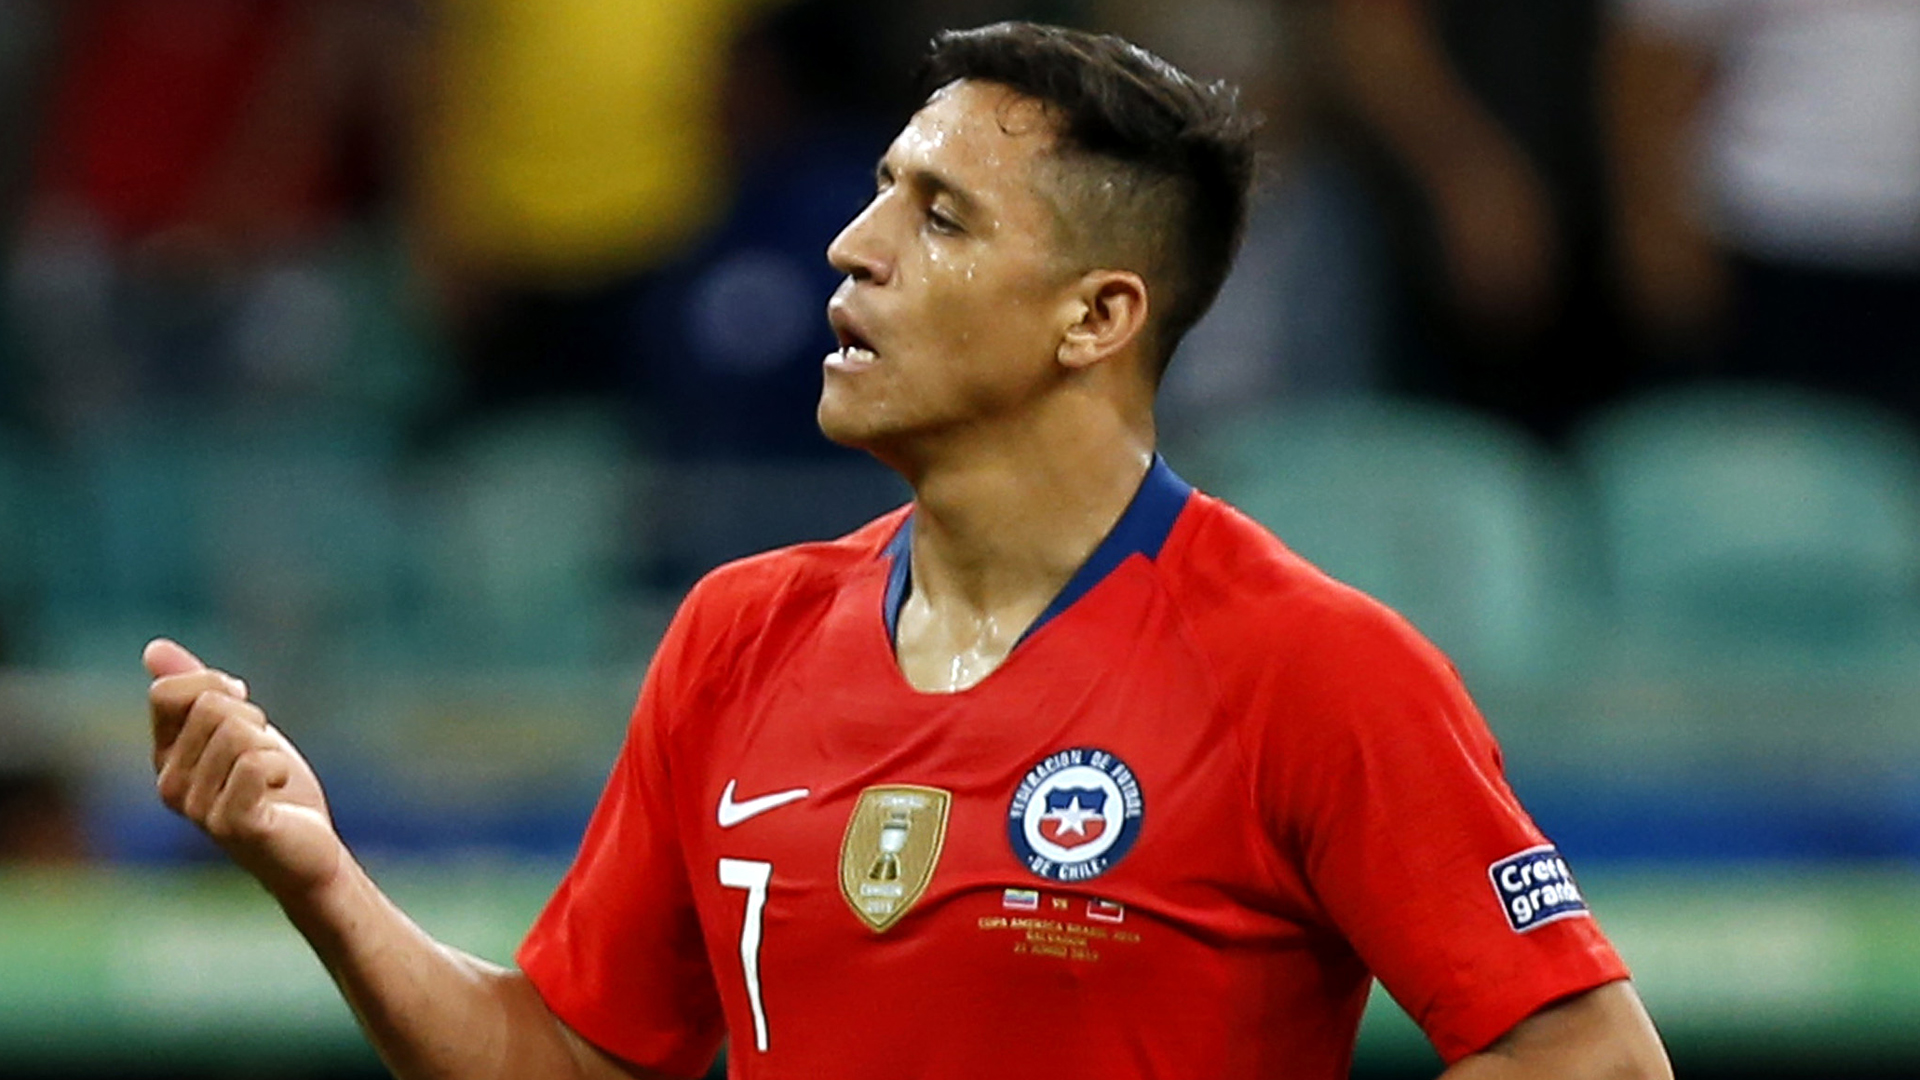 Sanchez feels more love with Chile than at Man United – Rueda